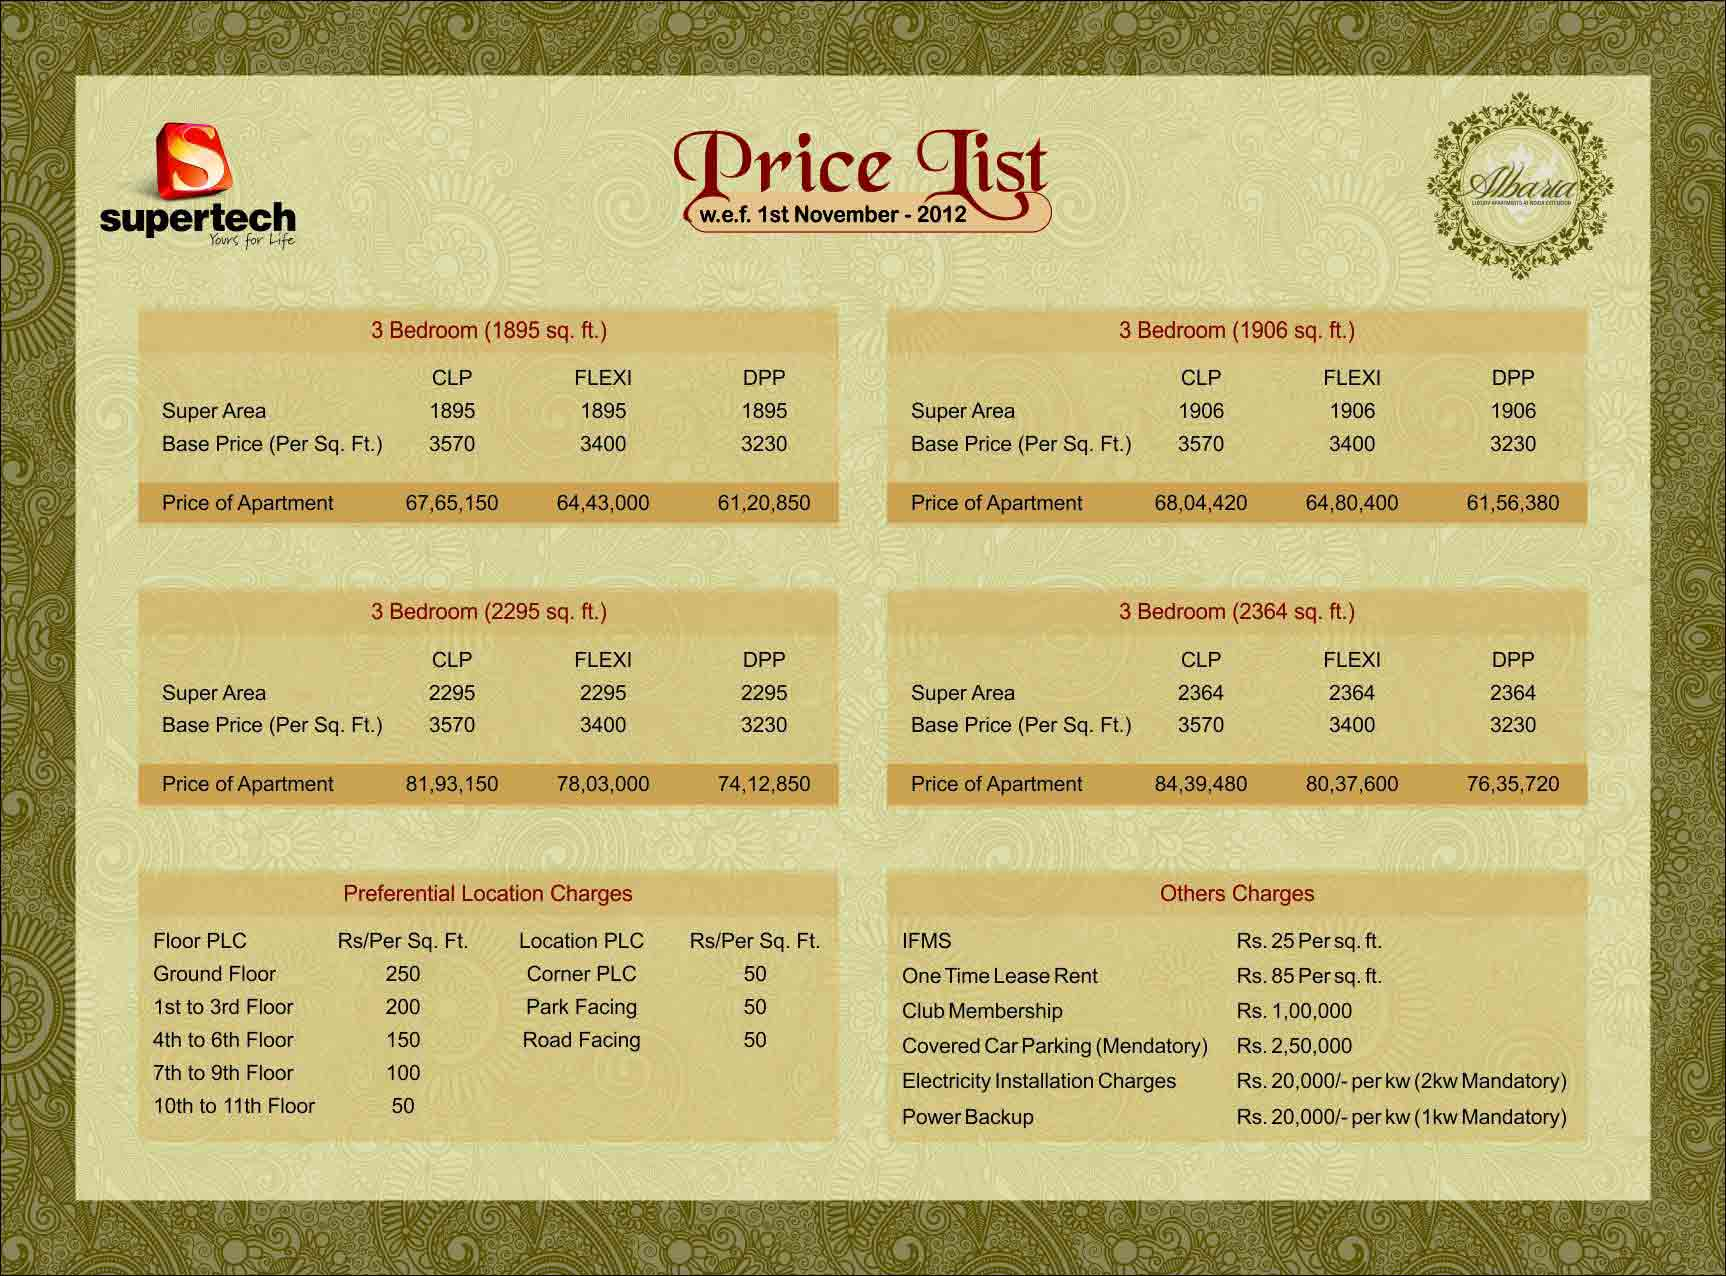 supertech albaria price list